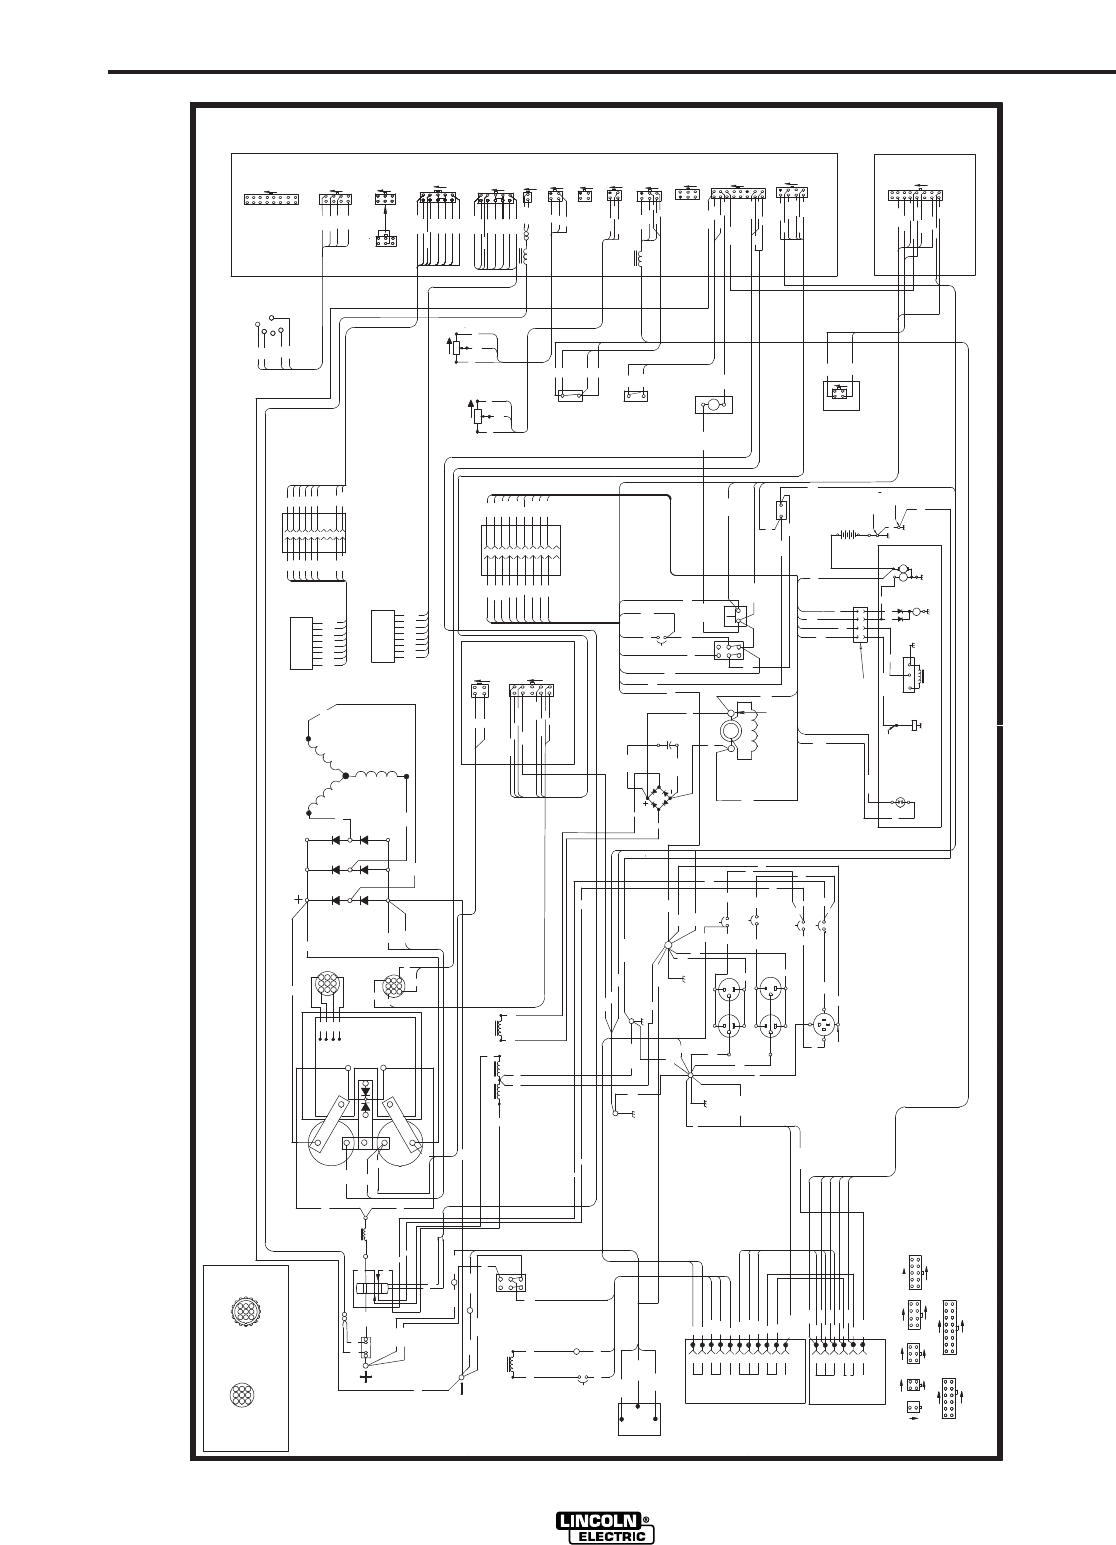 Page 45 of Lincoln Electric Welding System IM742-A User Guide |  ManualsOnline.comPower Tools Manuals - ManualsOnline.com